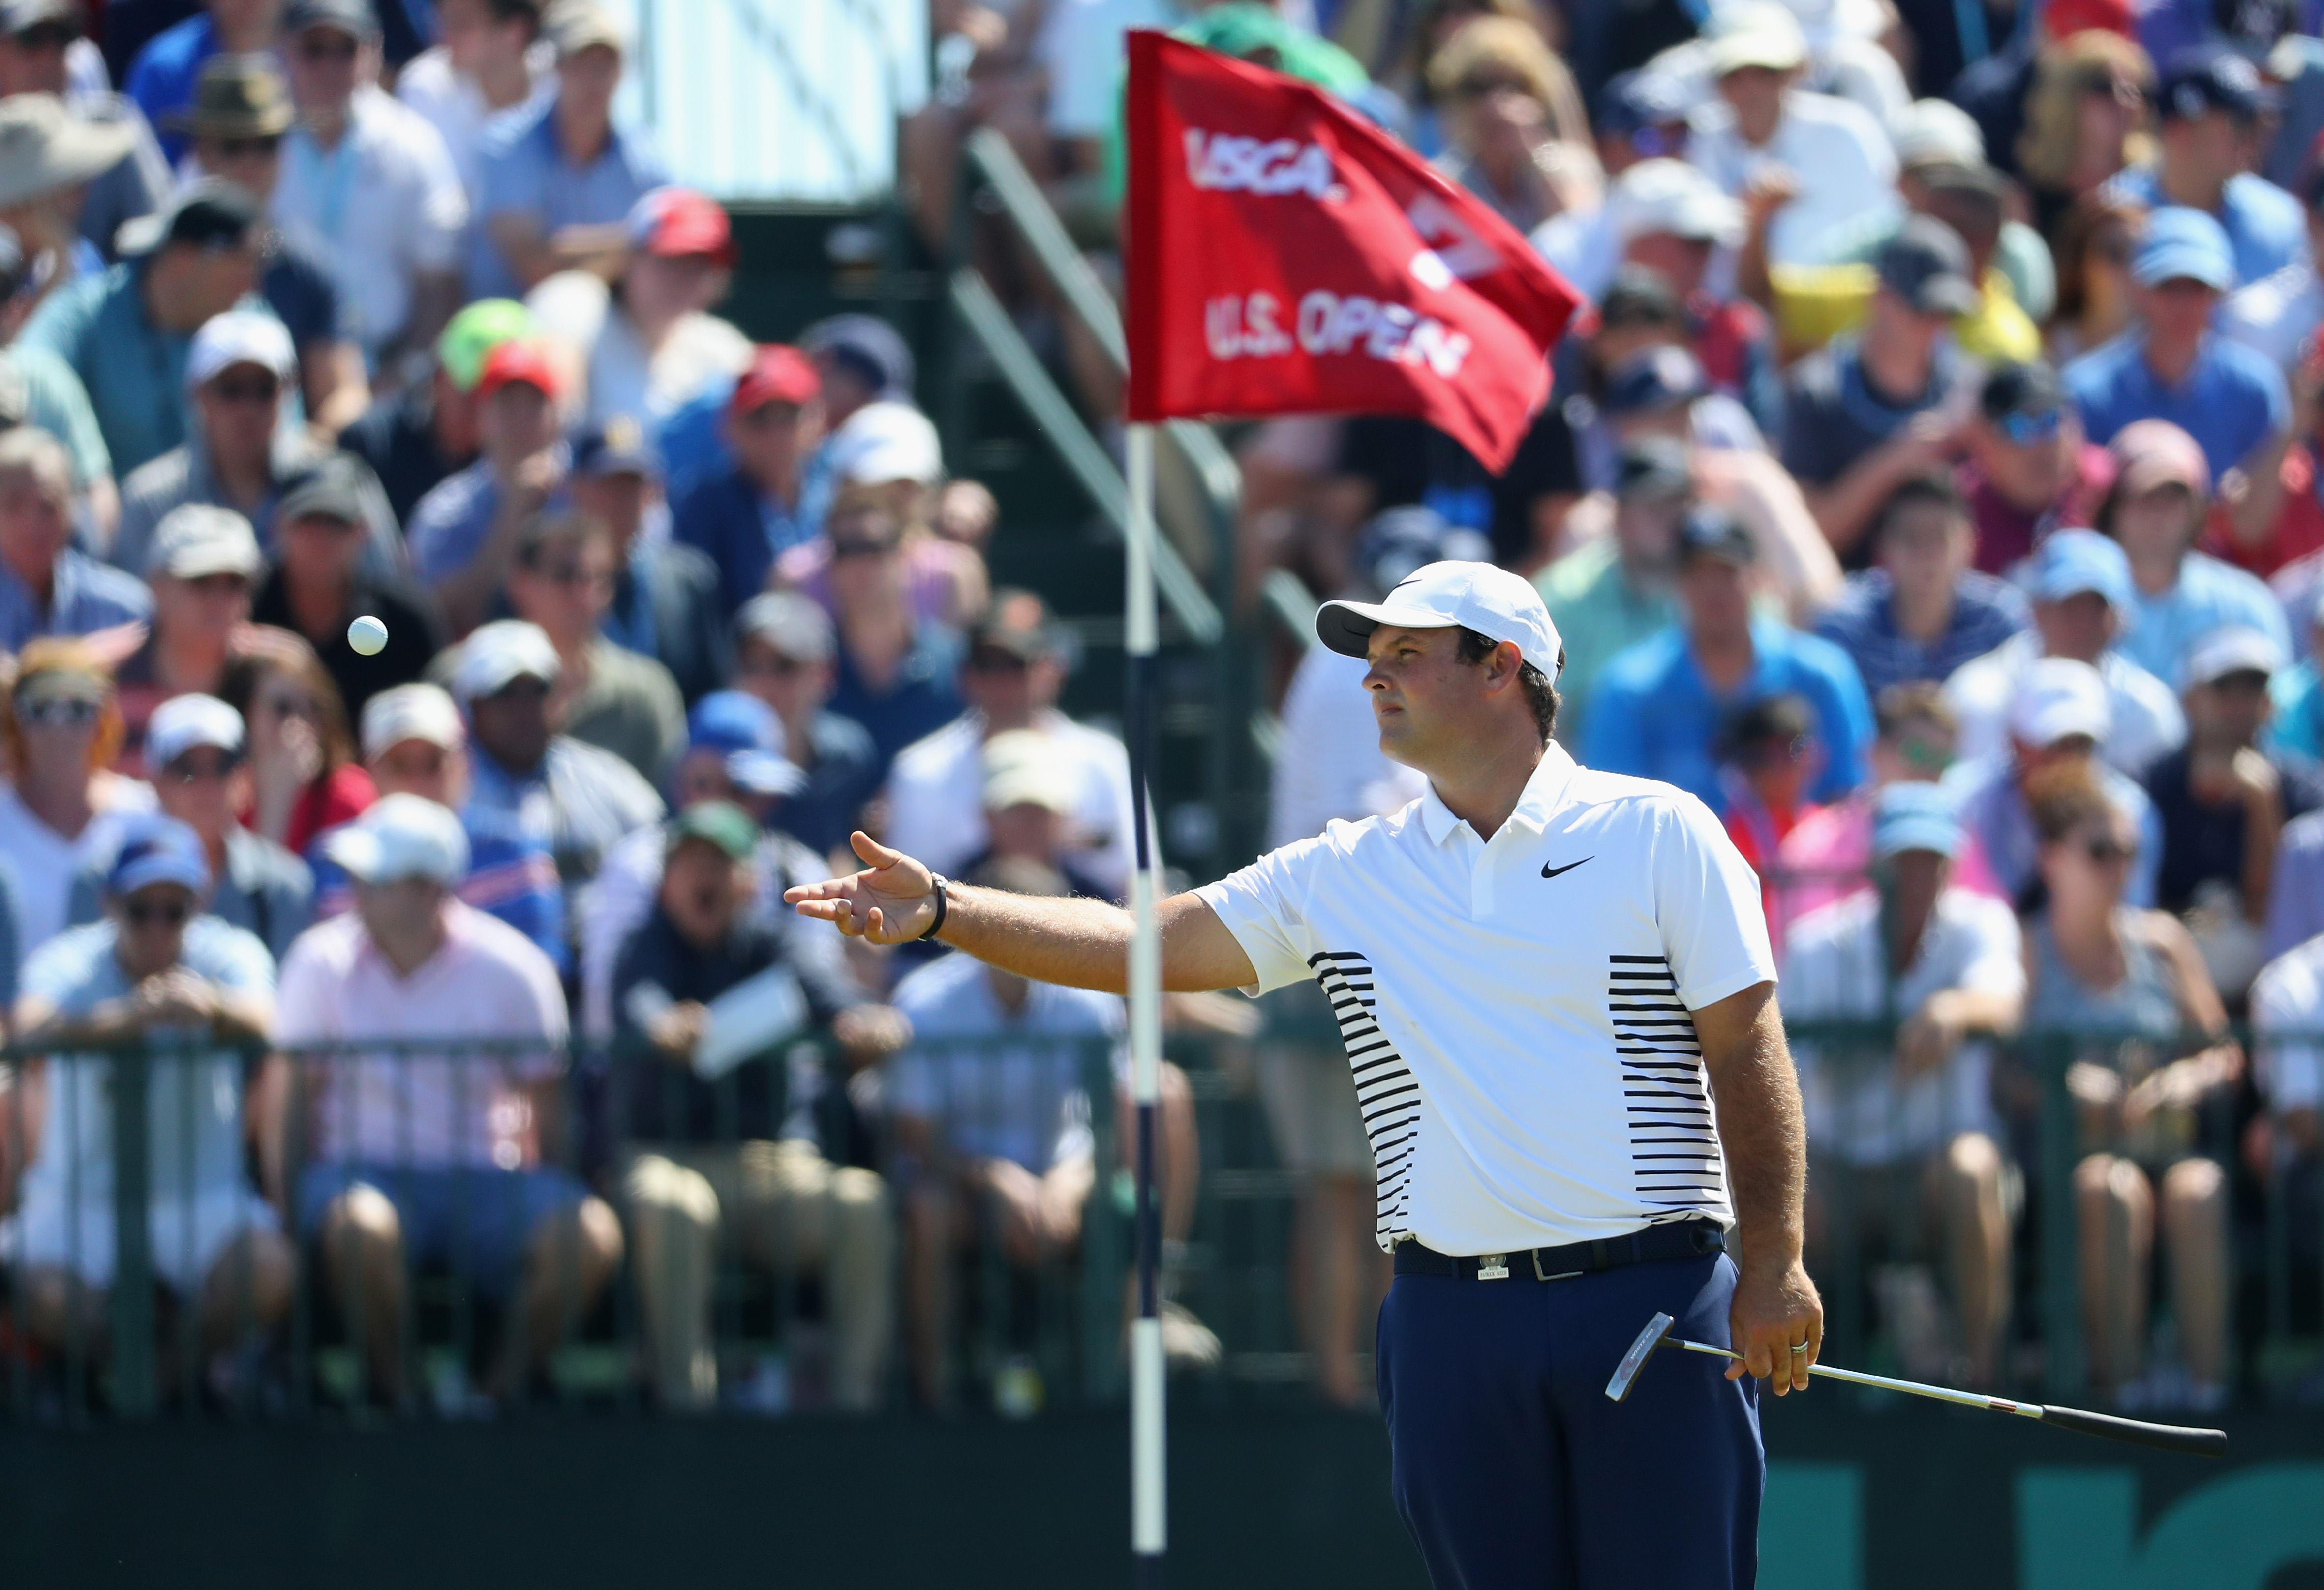 SOUTHAMPTON, NY - JUNE 17: Patrick Reed of the United States gestures to the crowd after making a birdie putt on the seventh green during the final round of the 2018 U.S. Open at Shinnecock Hills Golf Club on June 17, 2018 in Southampton, New York. (Photo by Warren Little/Getty Images)